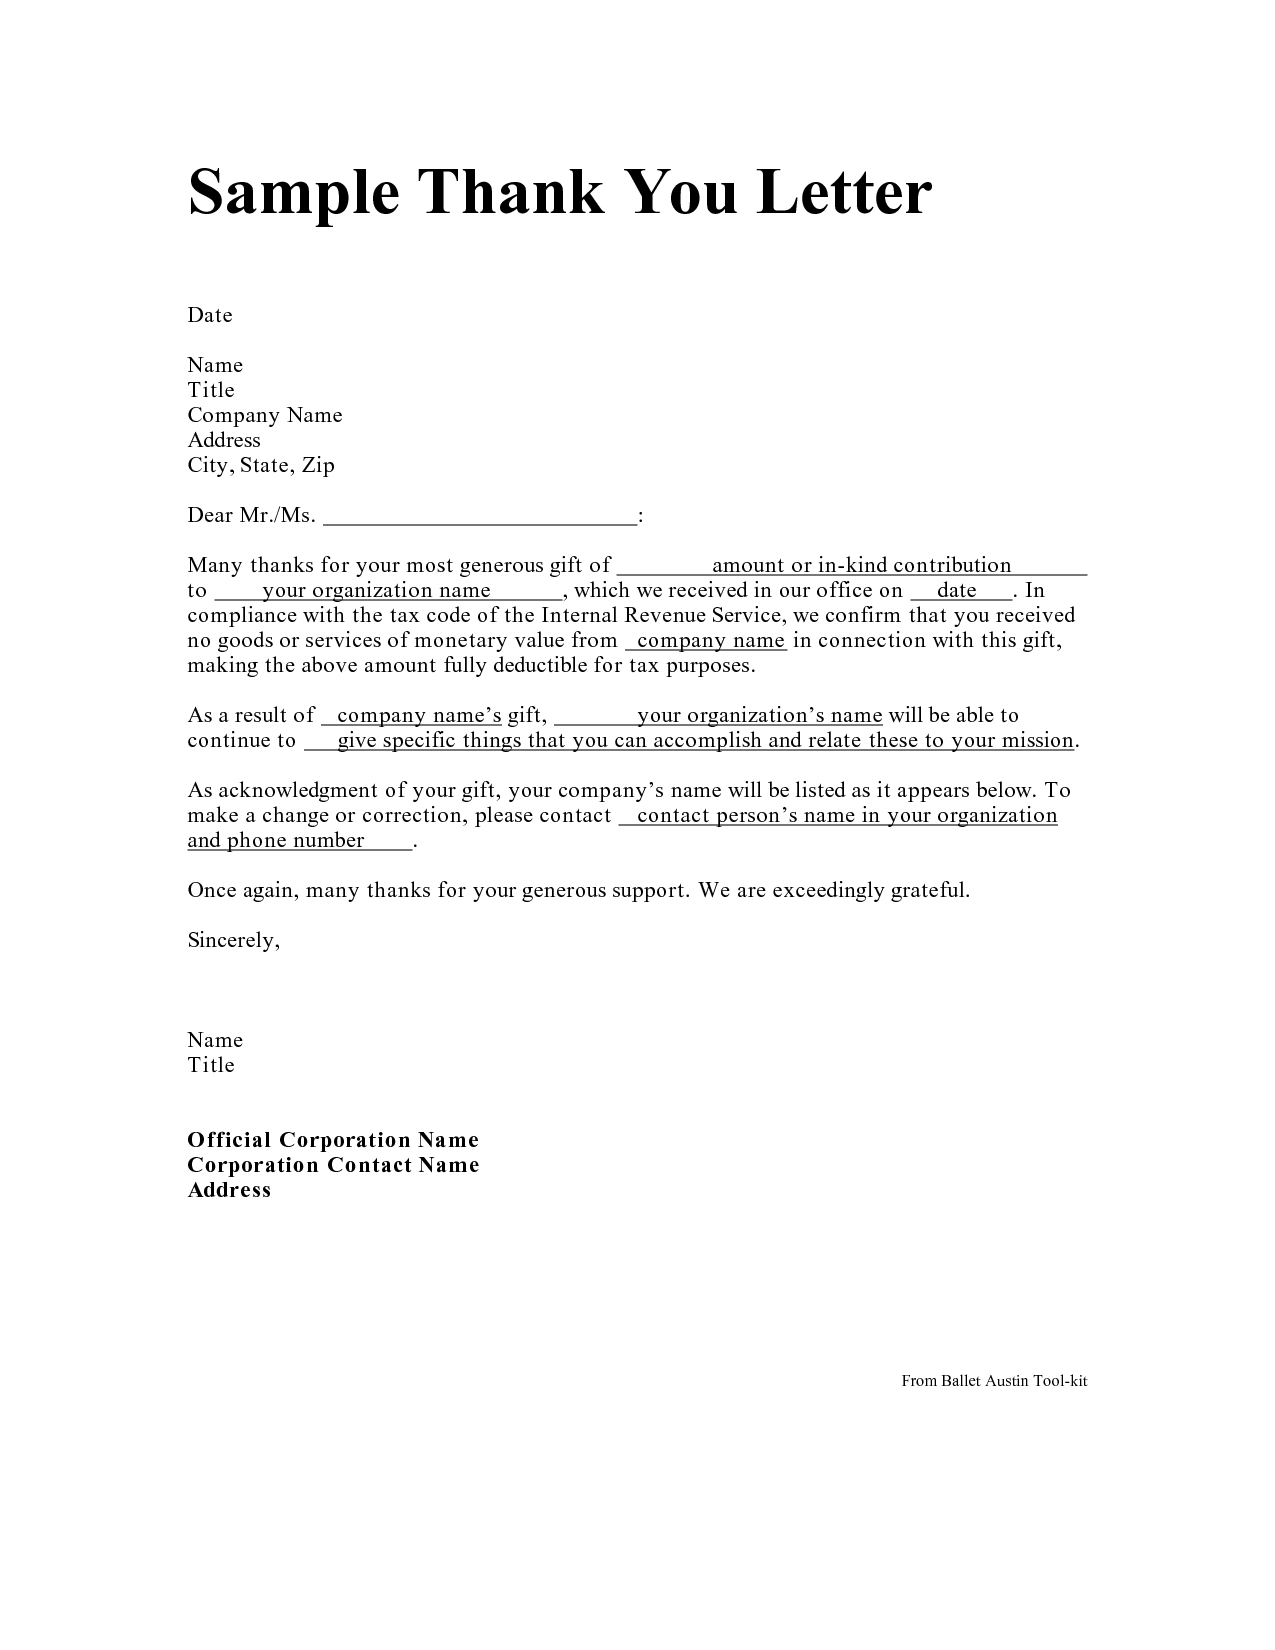 Golf tournament Thank You Letter Template - Personal Thank You Letter Personal Thank You Letter Samples